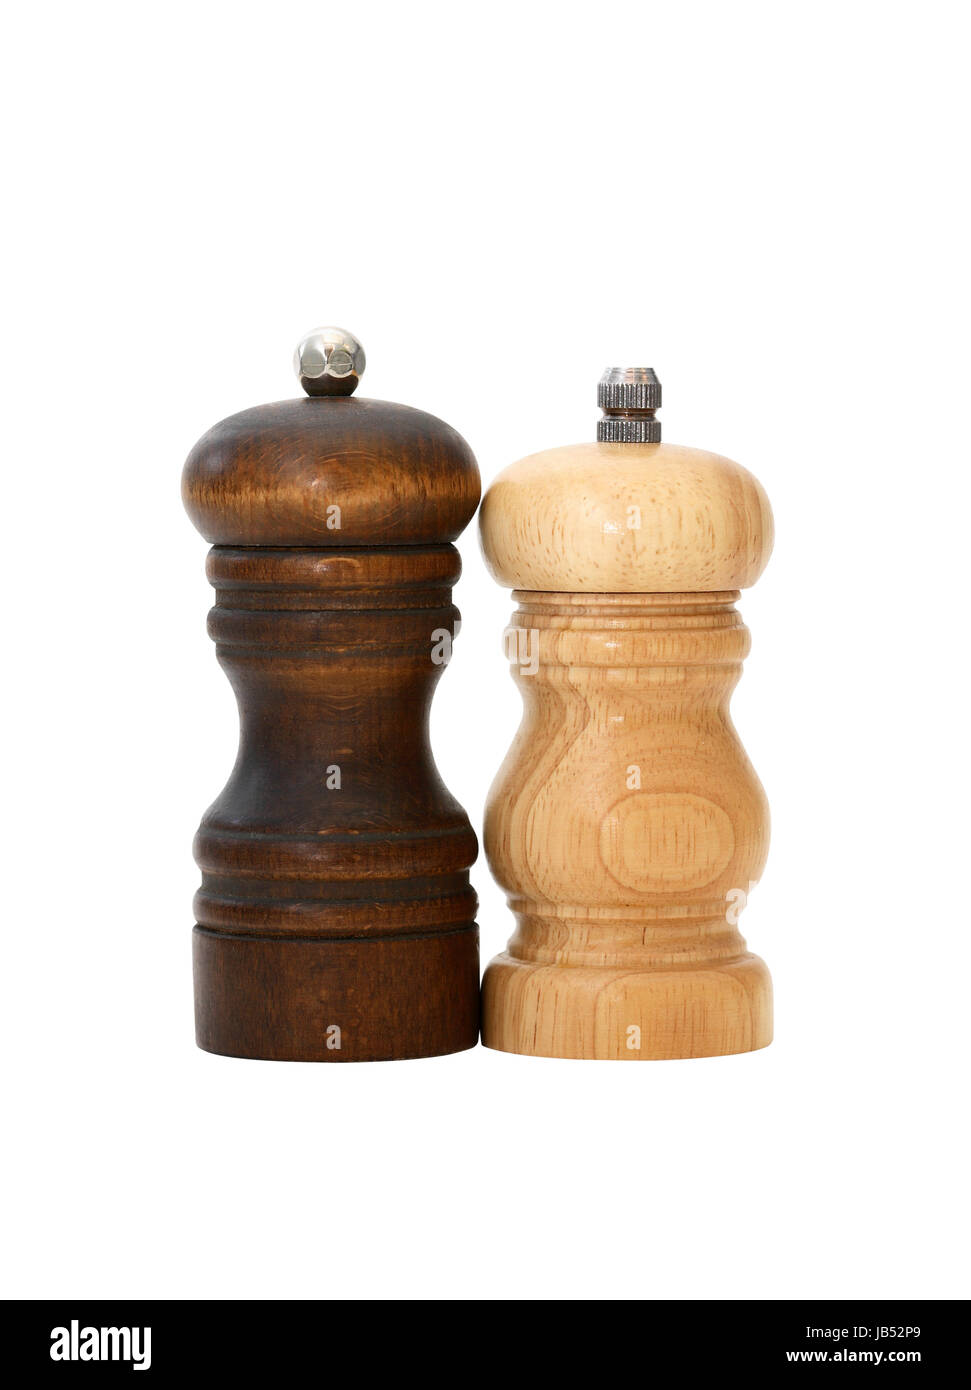 Pair of vintage wooden pepper mills on white background. Isolated with clipping path - Stock Image